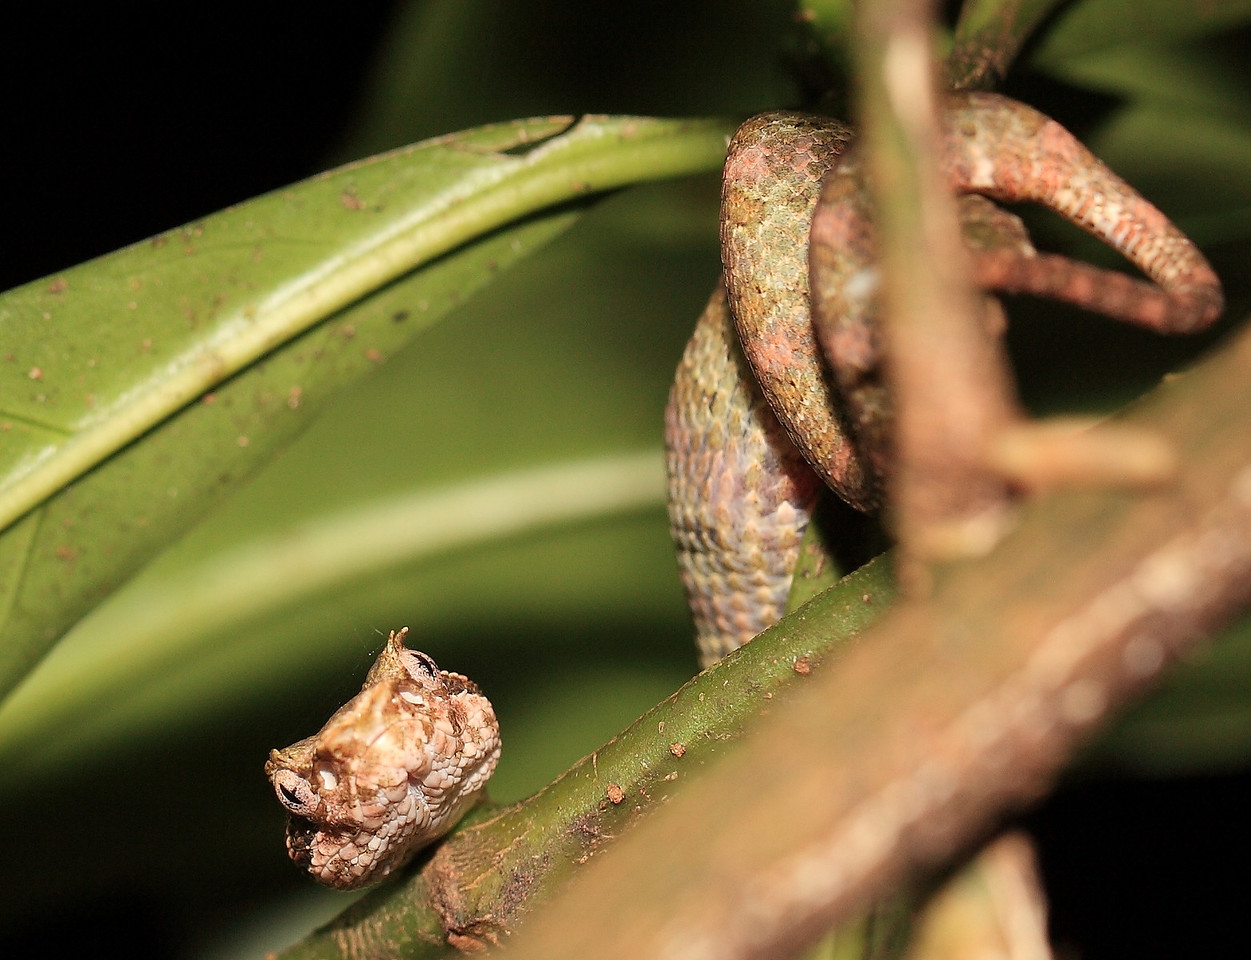 Small eyelash viper (Bothriechis schlegelii) with a full belly (probably a small lizard).